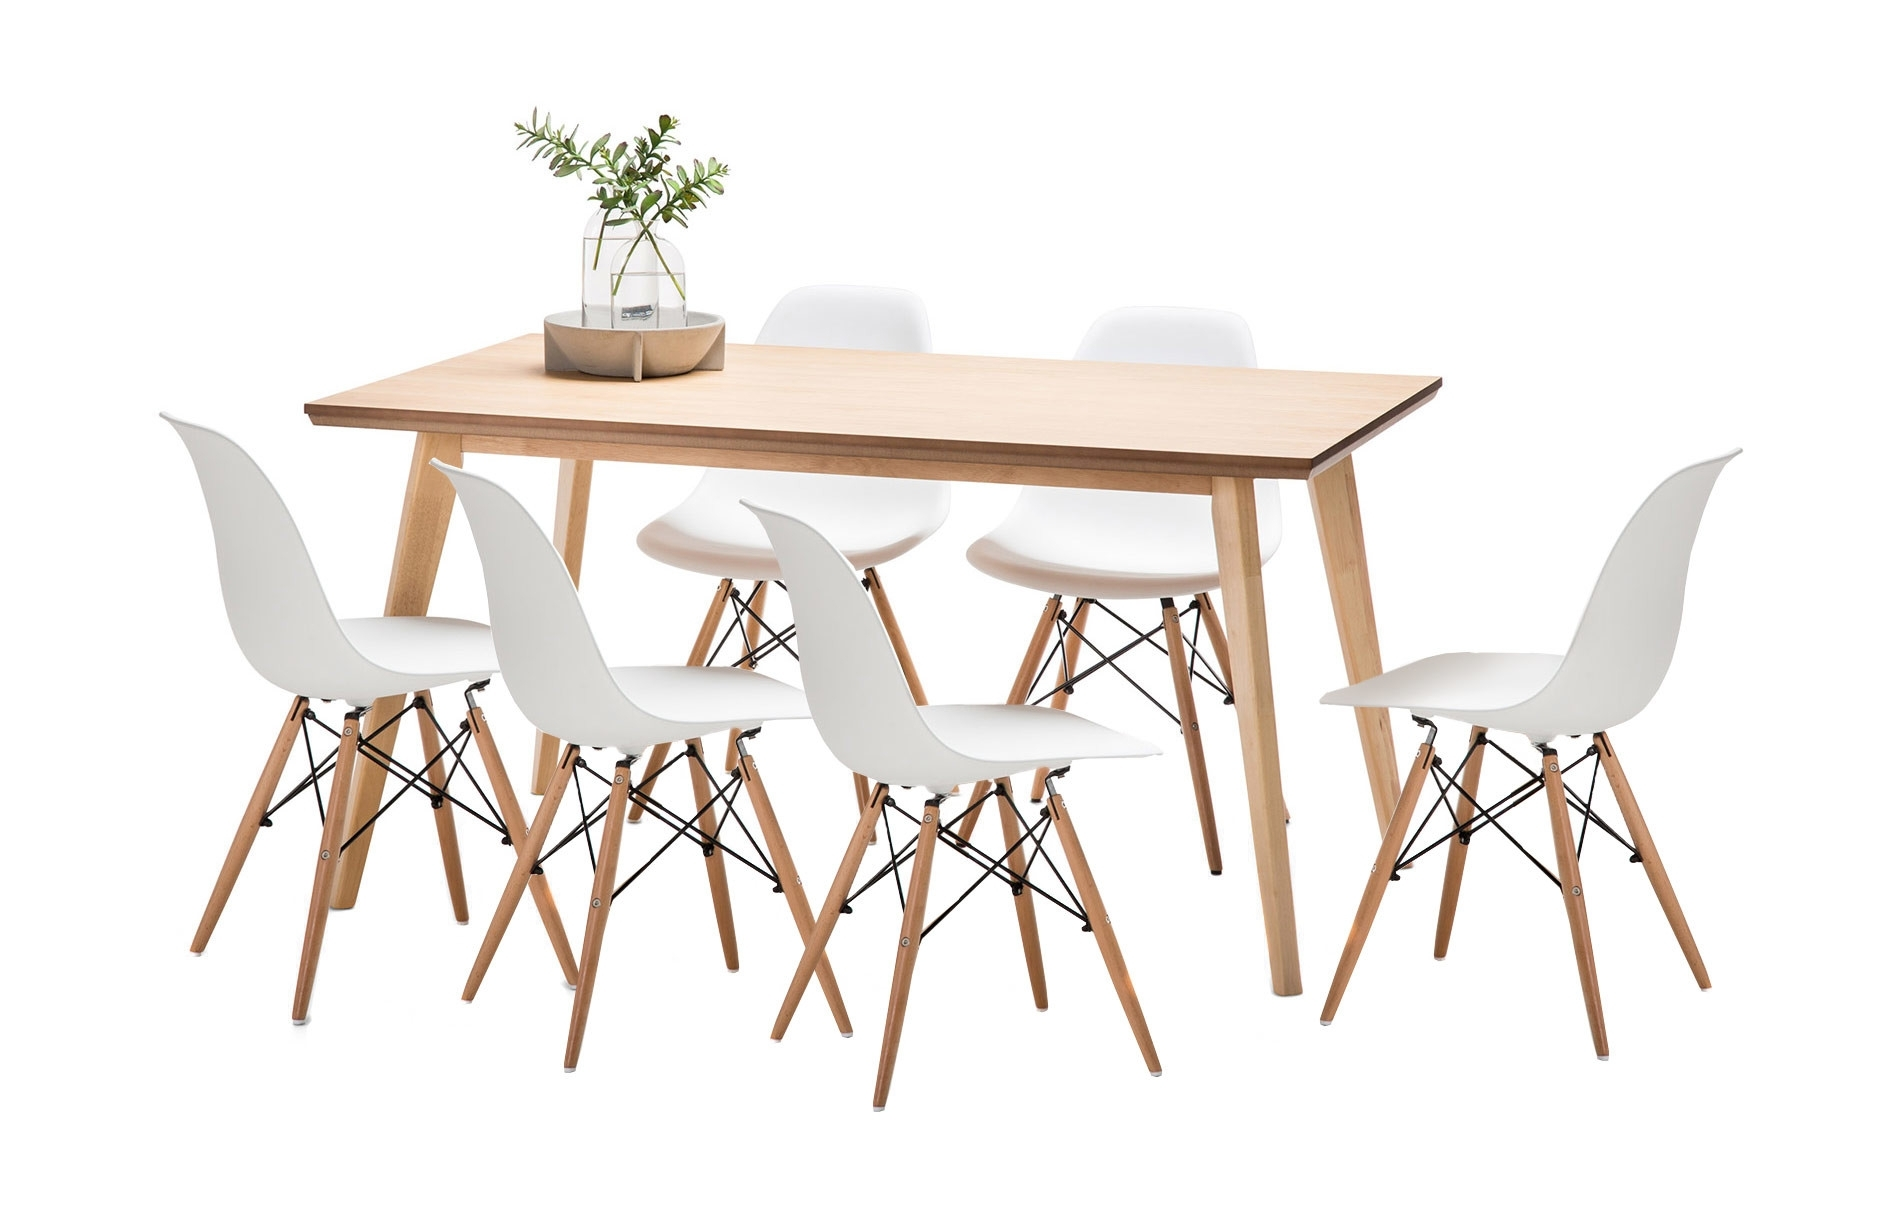 New Wyatt Dining Table Set With 6 Replica Eames Chairs | Ebay For Latest Wyatt Dining Tables (View 11 of 20)